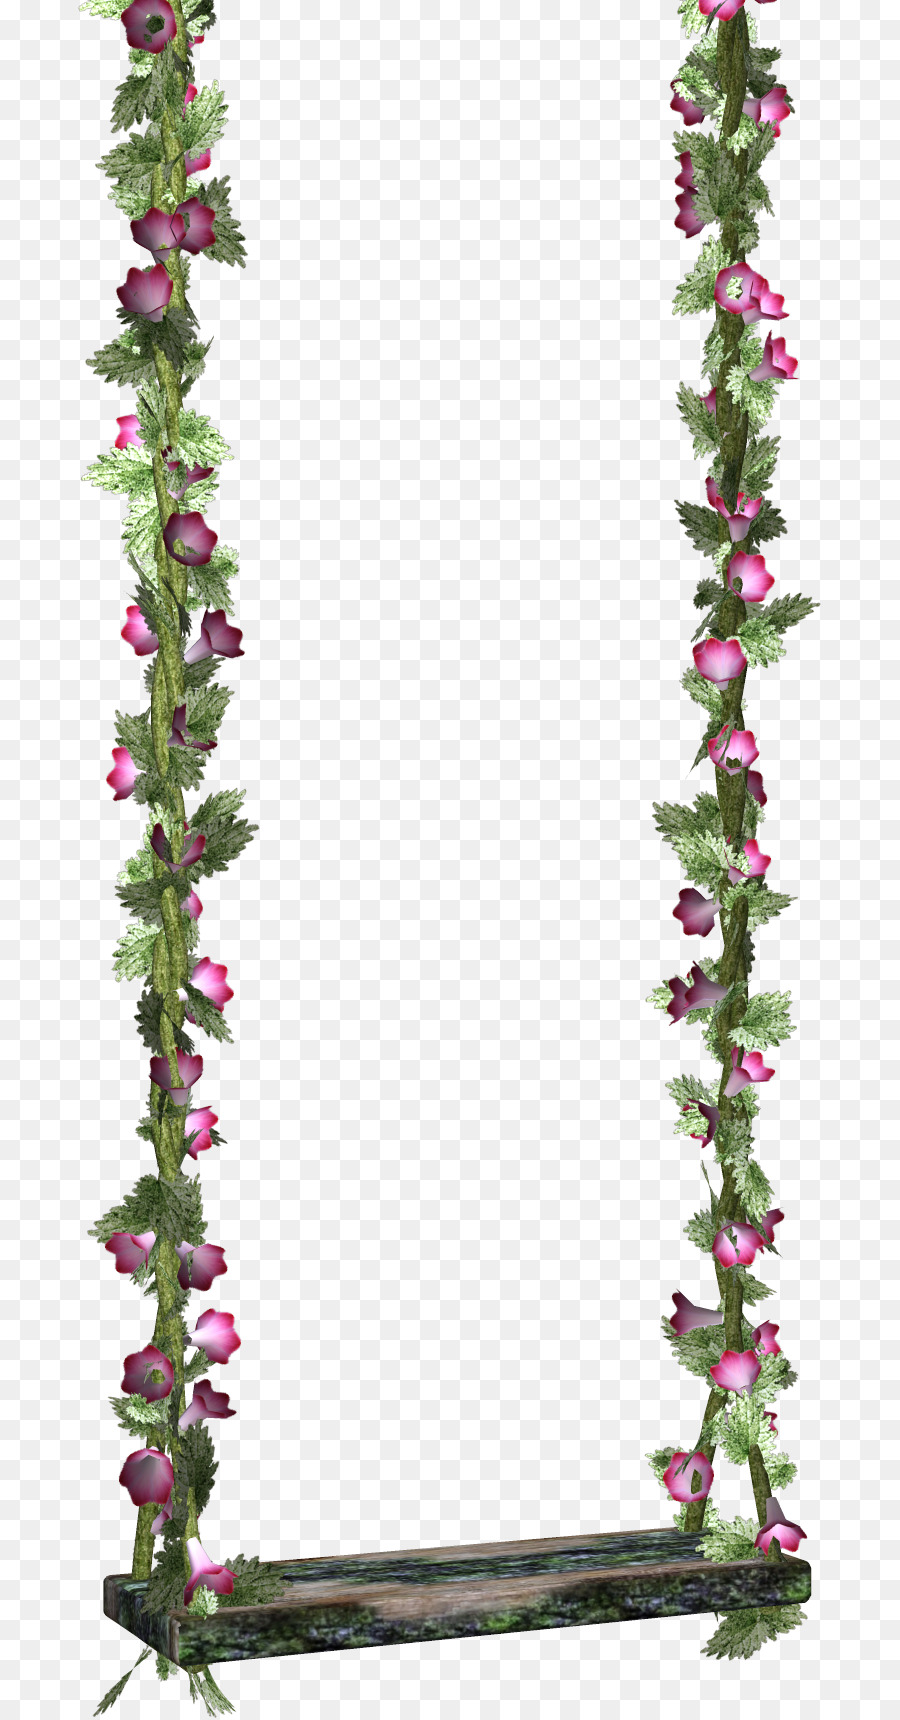 Swing clipart free transparent background clip transparent library Flowers Clipart Background png download - 743*1719 - Free ... clip transparent library